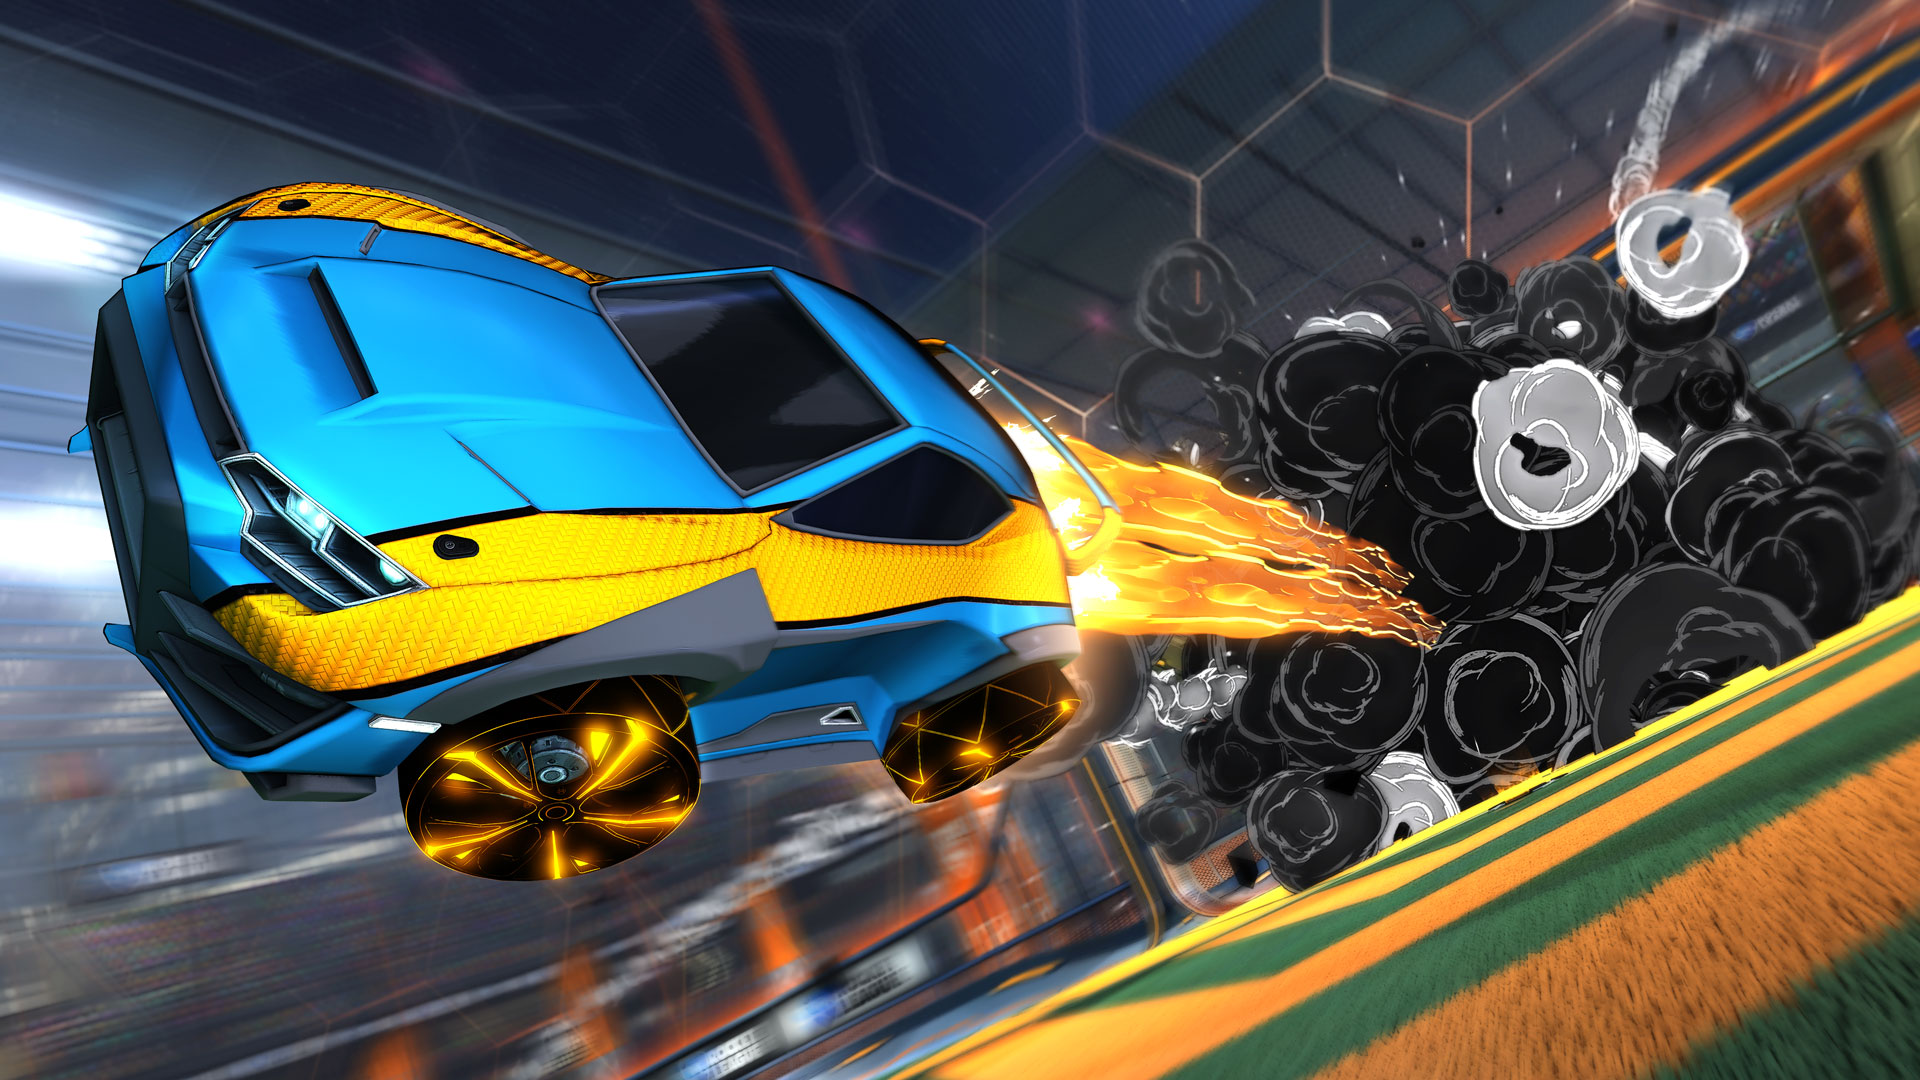 Rocket League on PS4